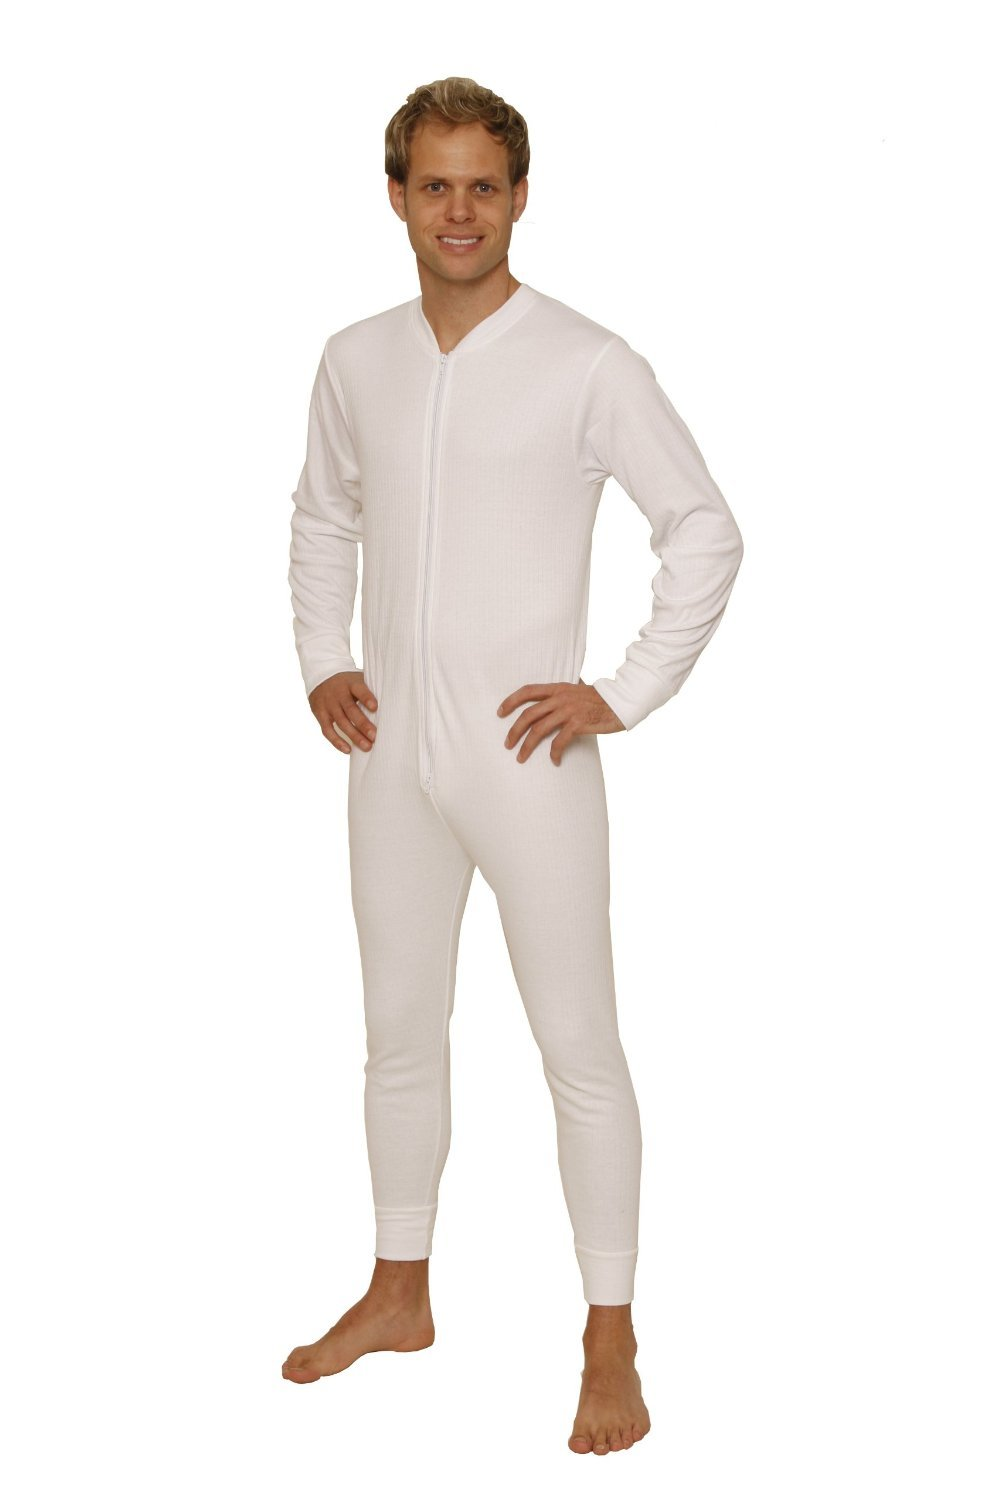 Octave Mens Thermal Underwear All in One Union Suit with Zipped Back Flap (Ex-Ex-Large: Chest 48-50 inches, White)